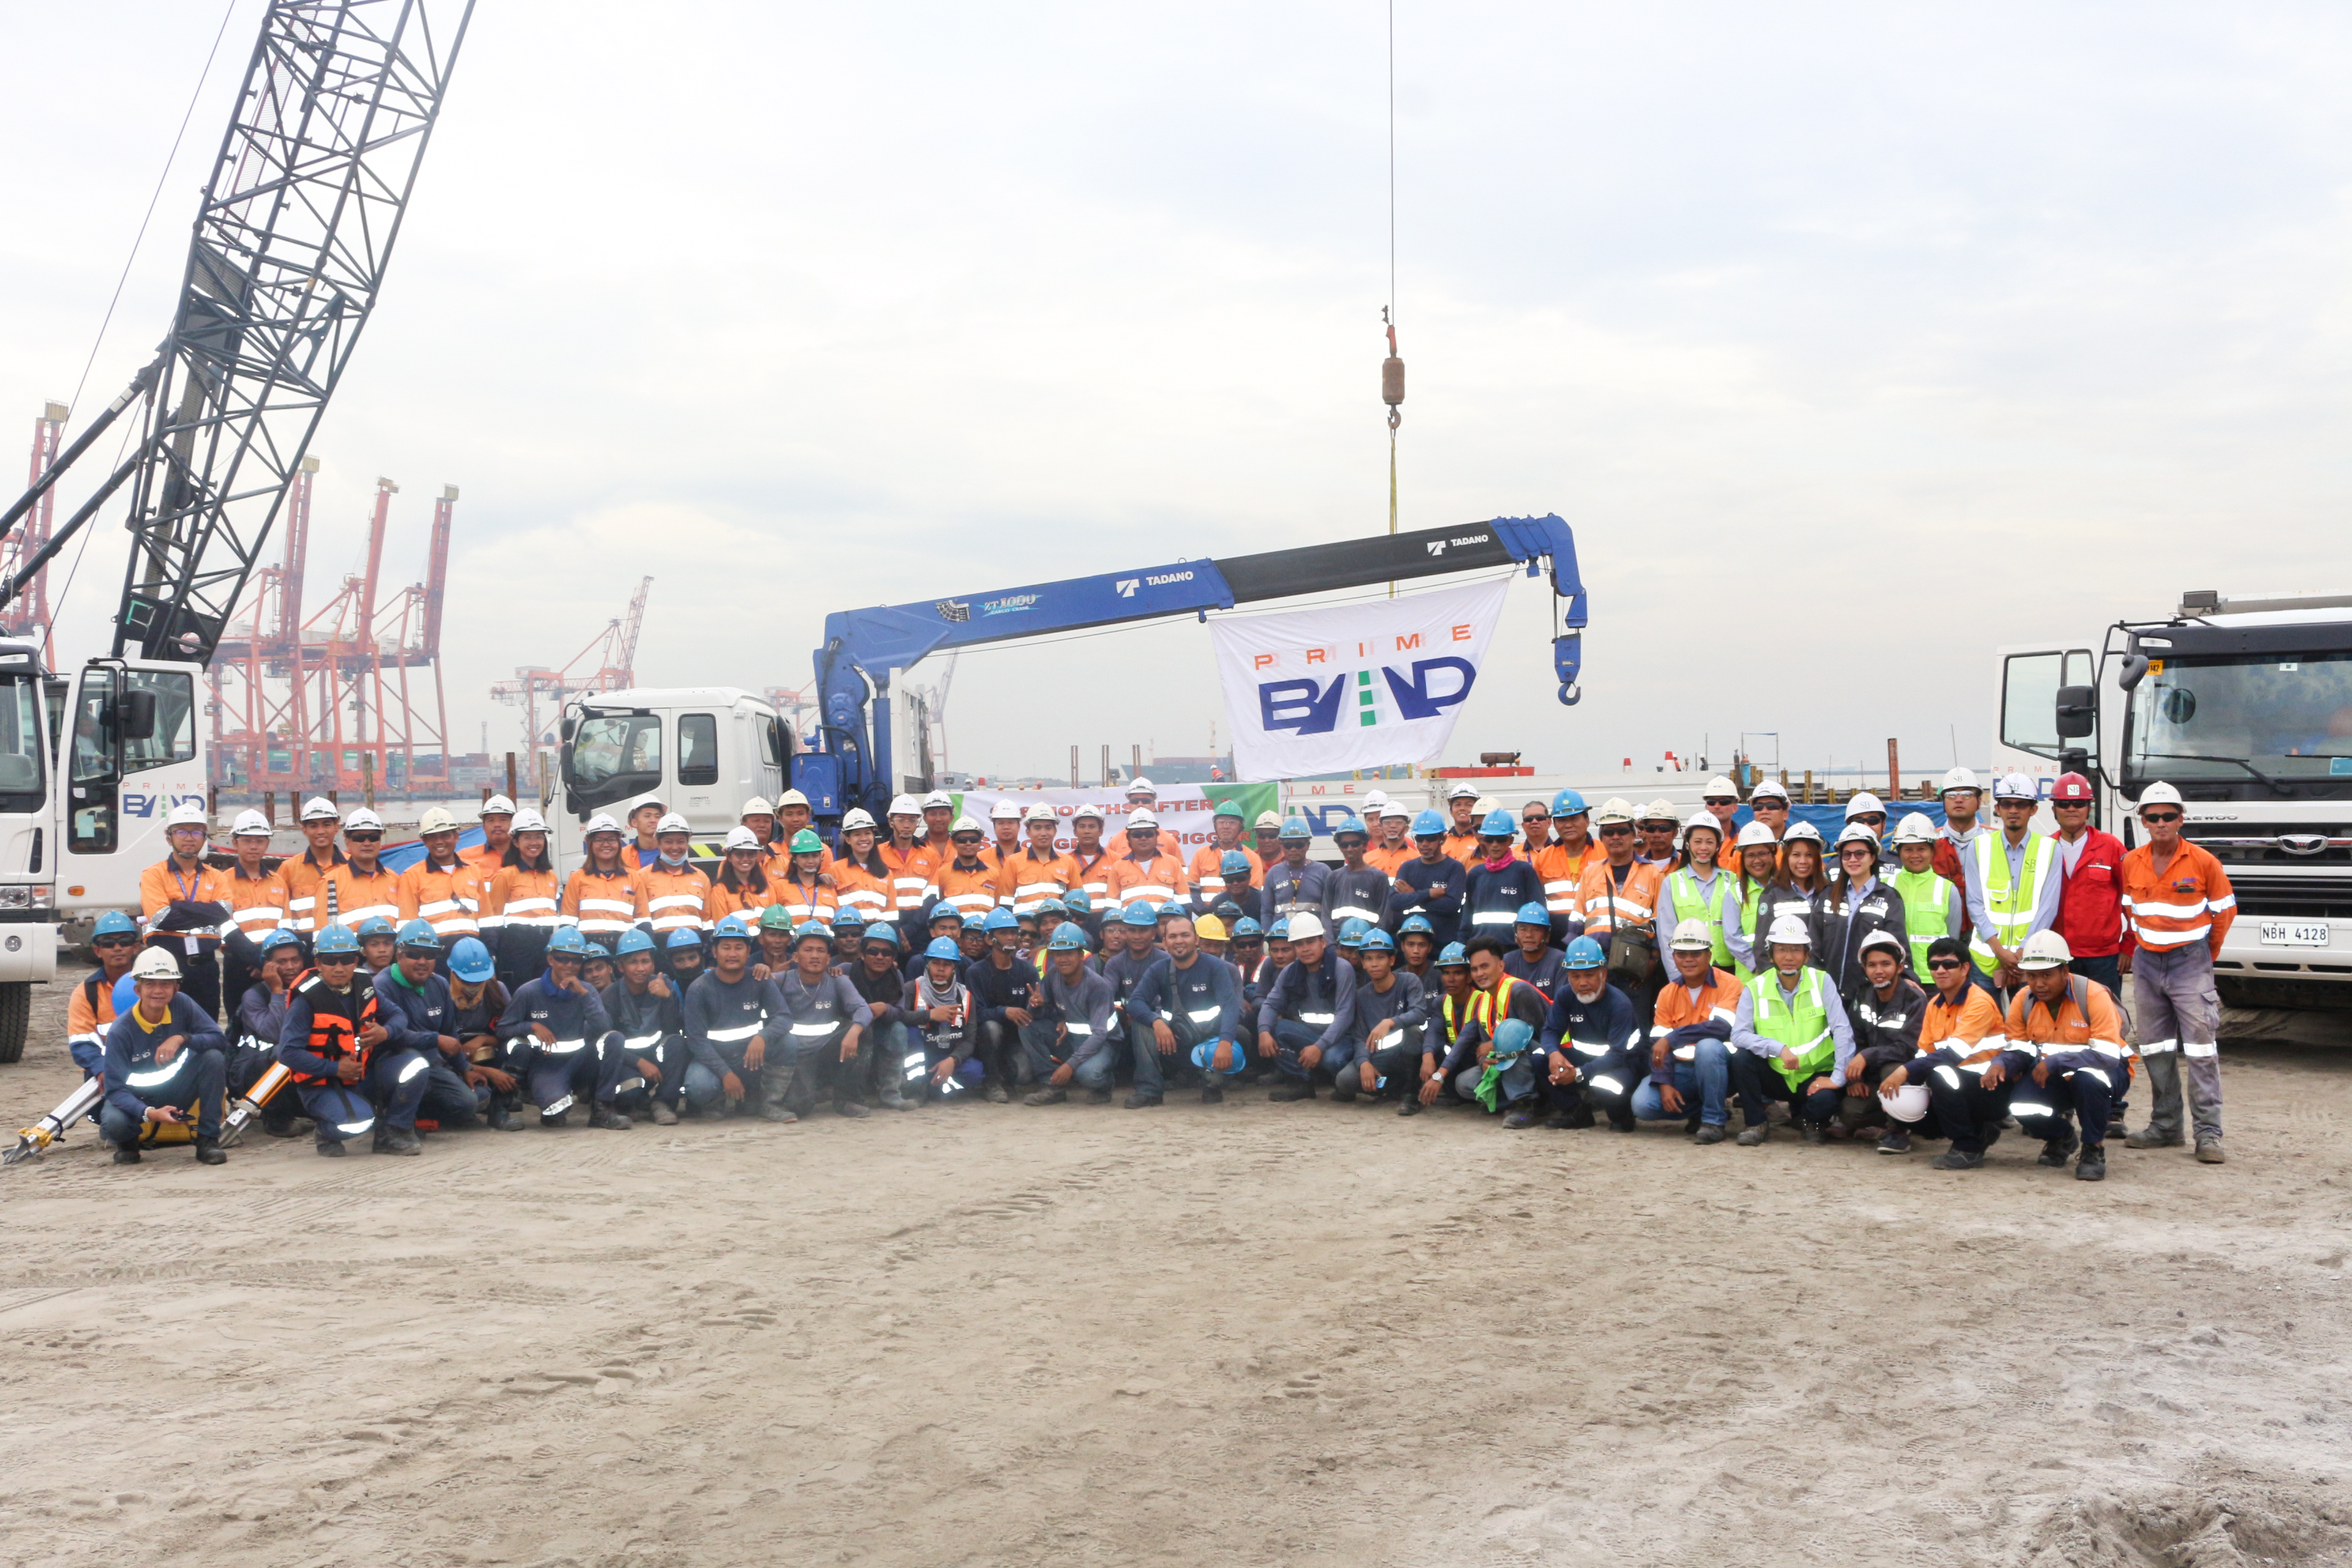 PrimeBMD holds blessing ceremony for heavy equipment